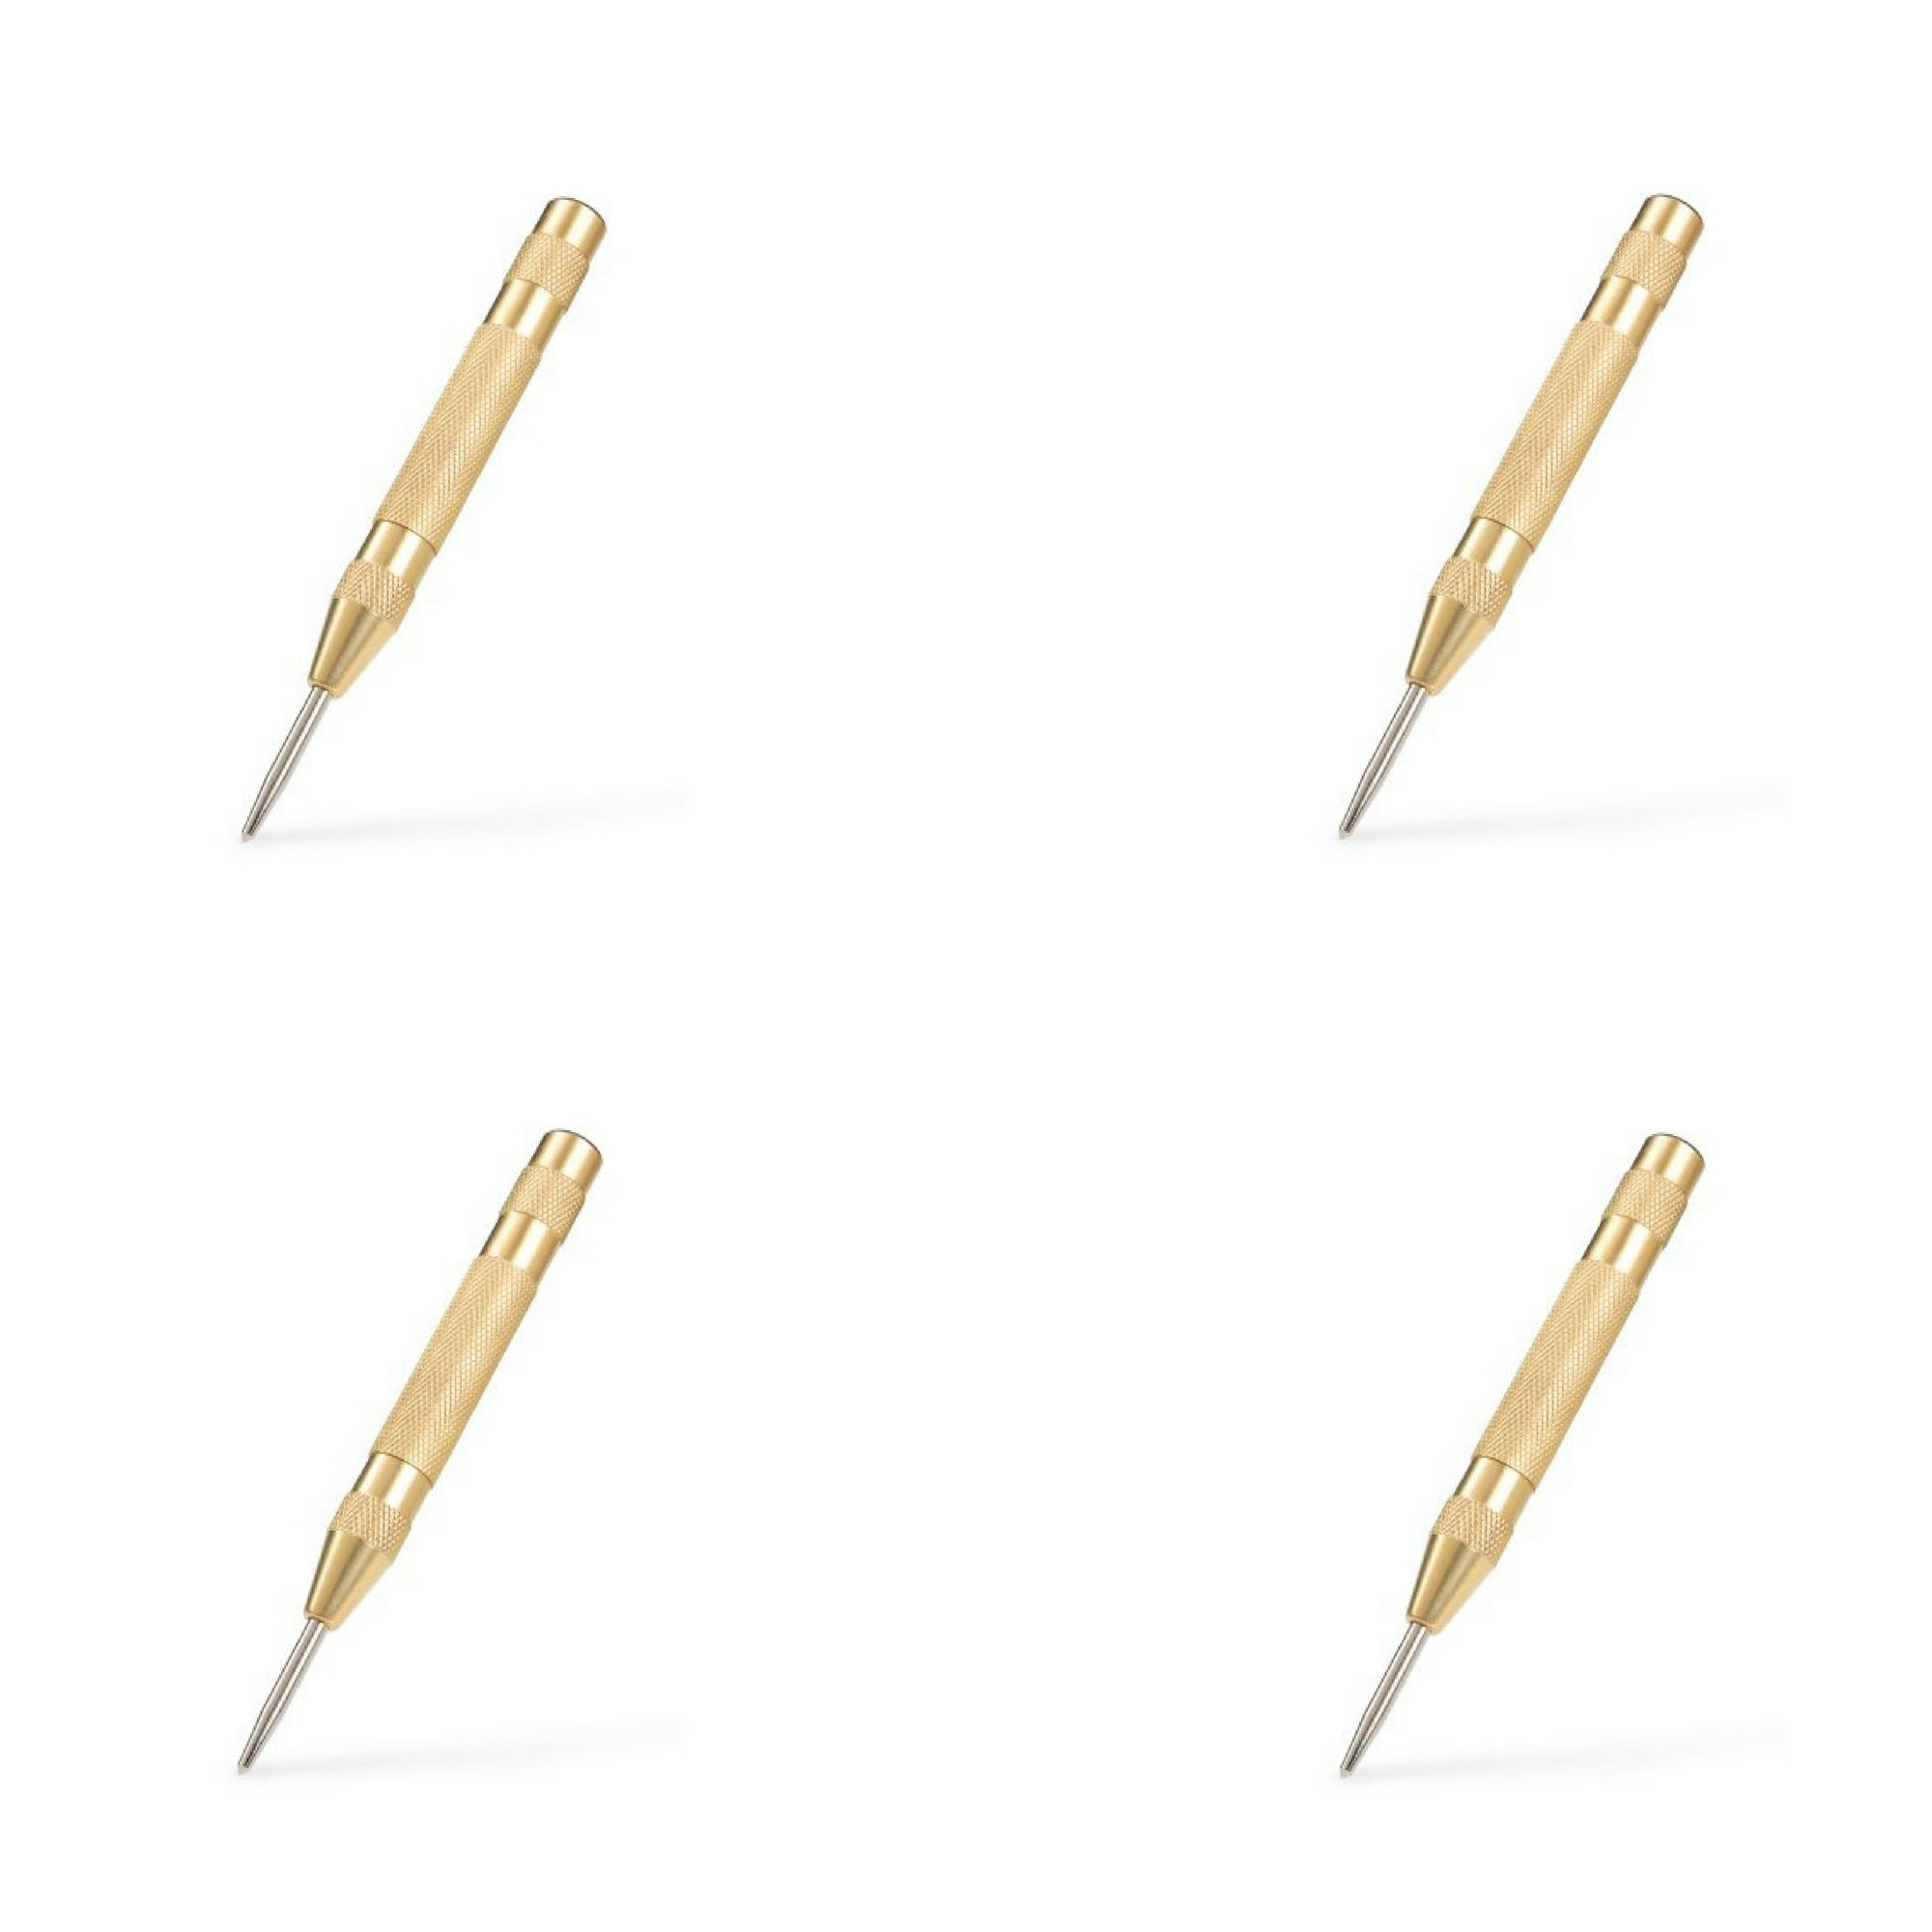 TEKTON 6580 Automatic Center Punch 4 Pack